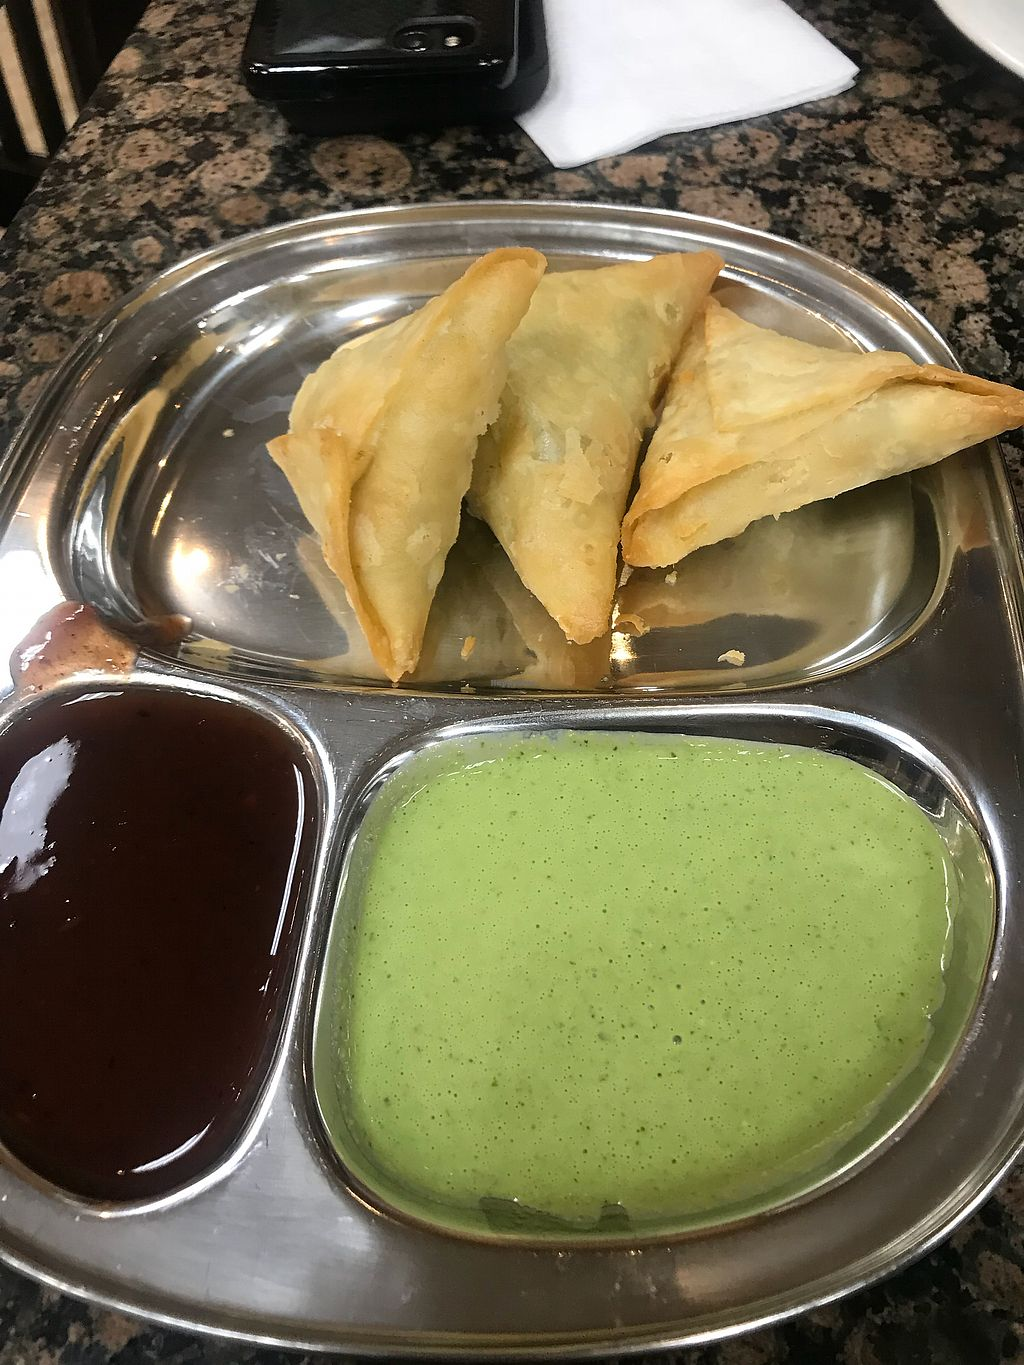 "Photo of Bhanu's Indian Grocery and Cuisine  by <a href=""/members/profile/Vegan_Ness"">Vegan_Ness</a> <br/>Vegetable samosa w/ tamarind sauce & cilantro sauce (lil spicy) <br/> January 2, 2018  - <a href='/contact/abuse/image/39050/342267'>Report</a>"